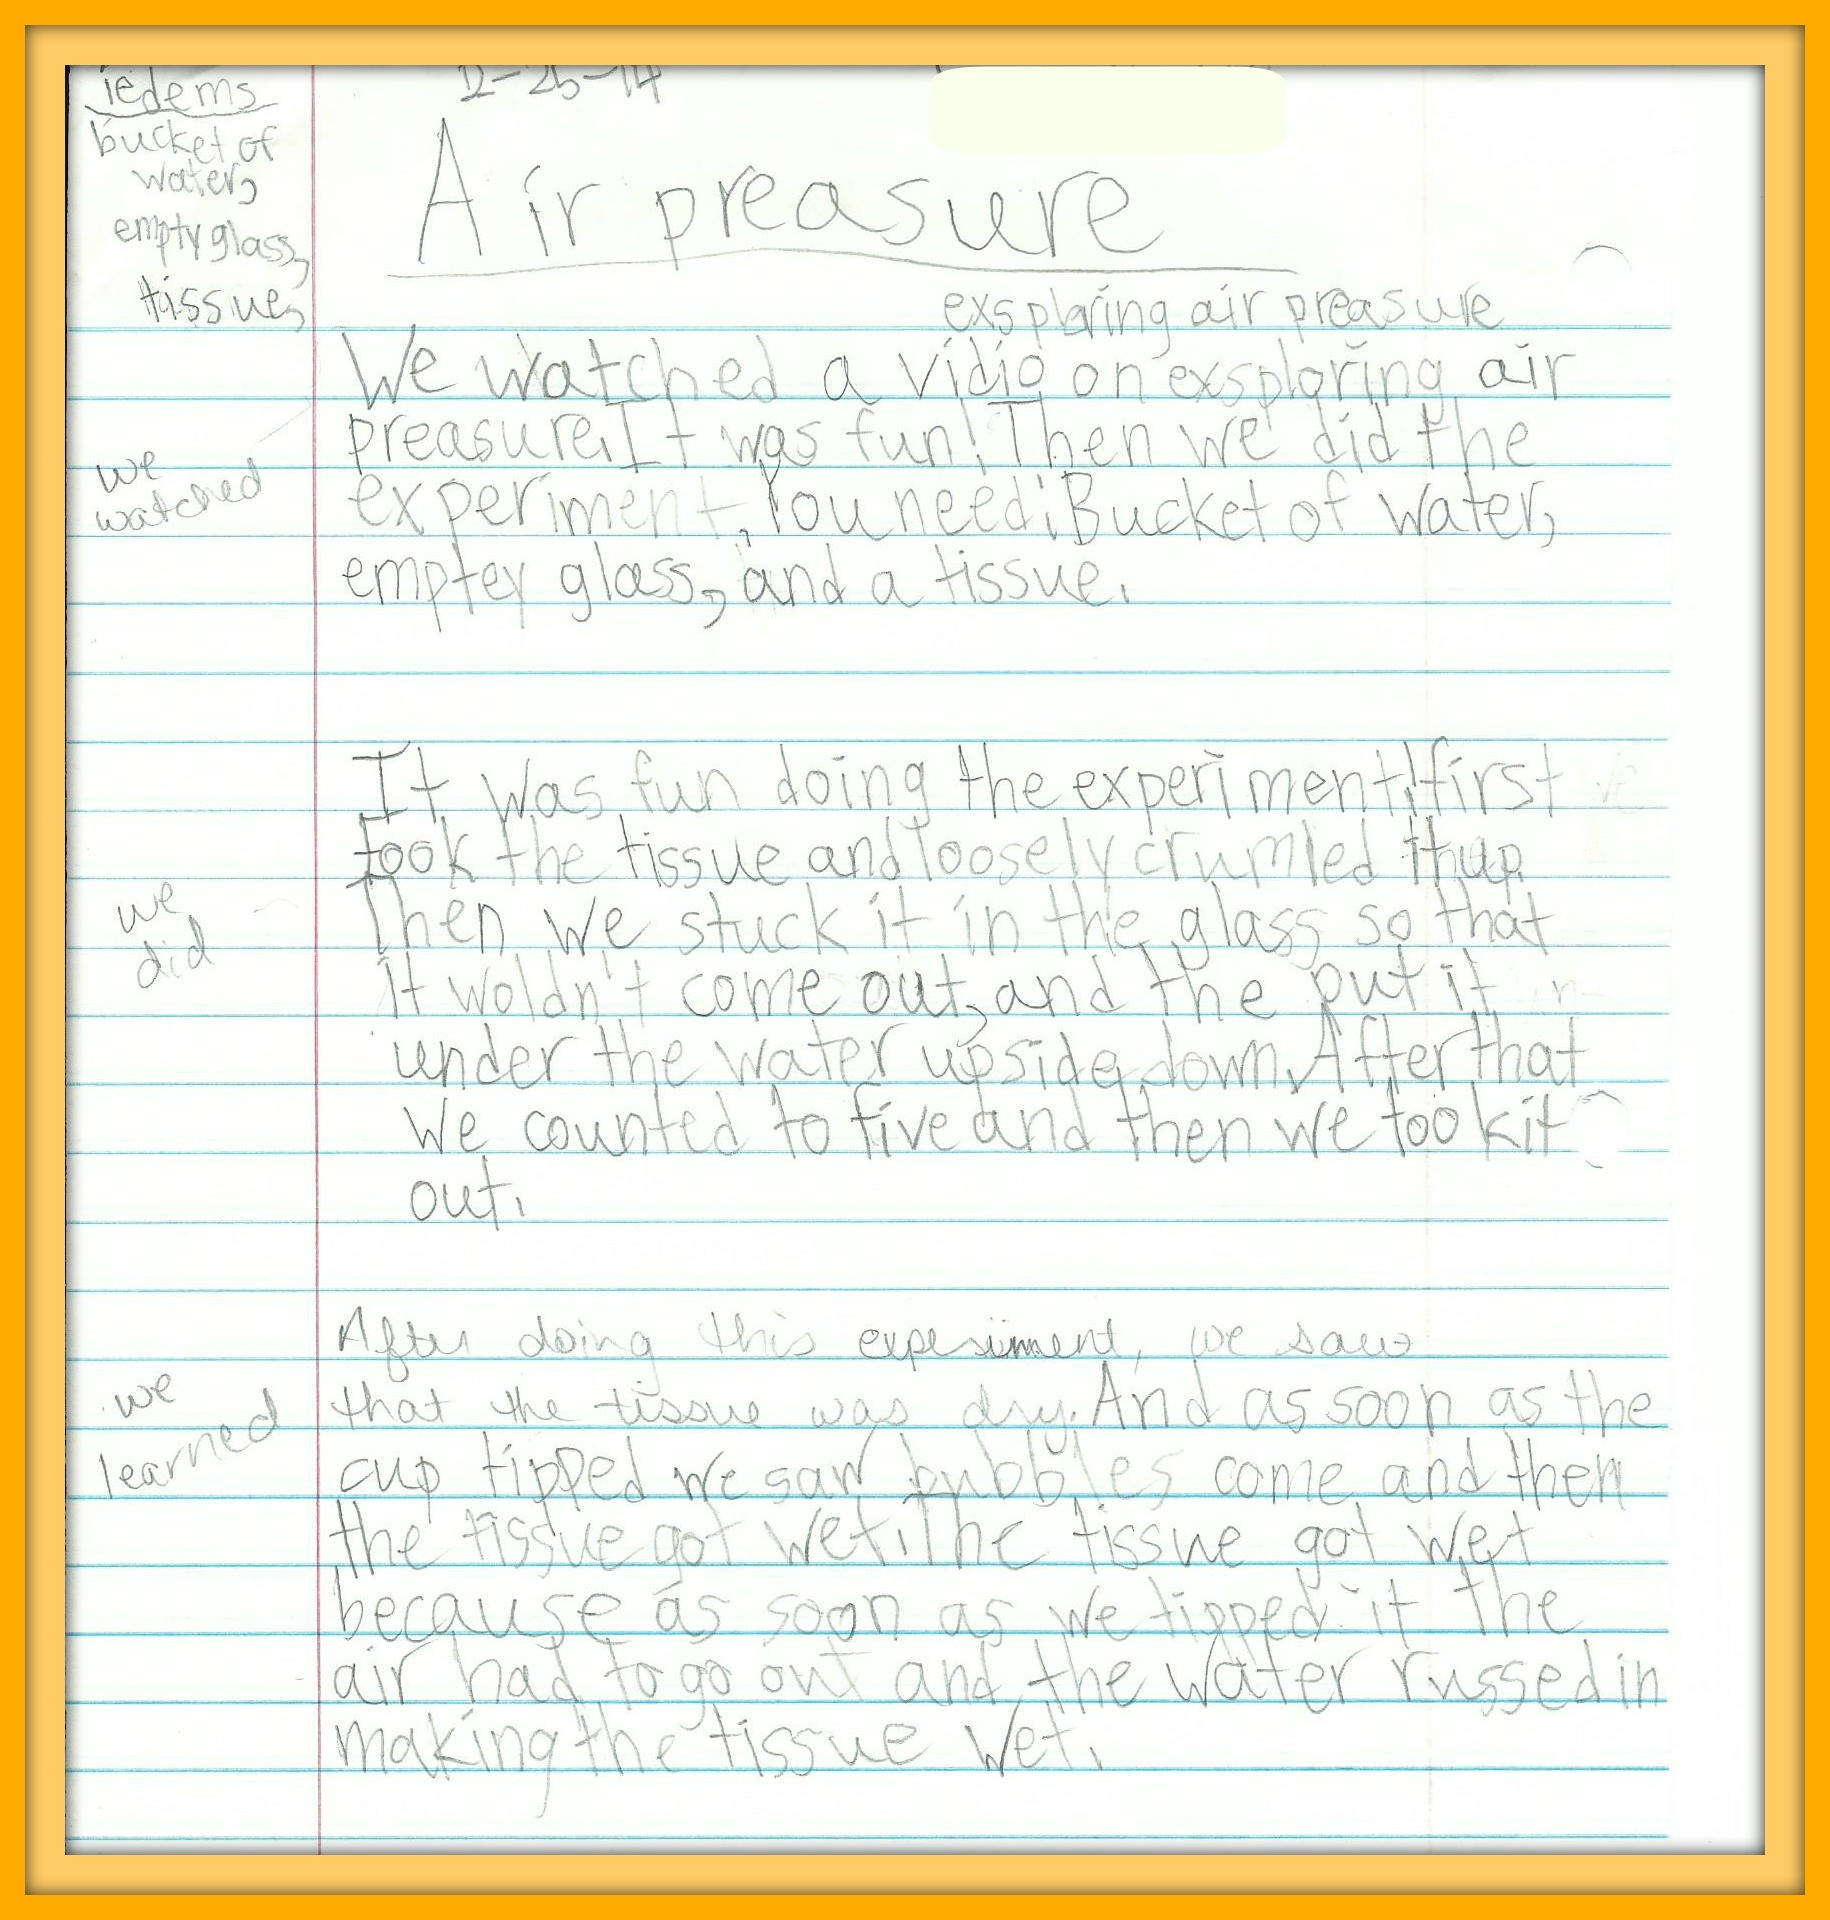 thesis statement for teenage suicide about pressures and feelings Students may feel the pressure to succeed  gifted adolescents' inability to deal  with complex and intense feelings may be a source of vulnerability that can  contribute to suicidal  teachers should also read students' essays attentively.